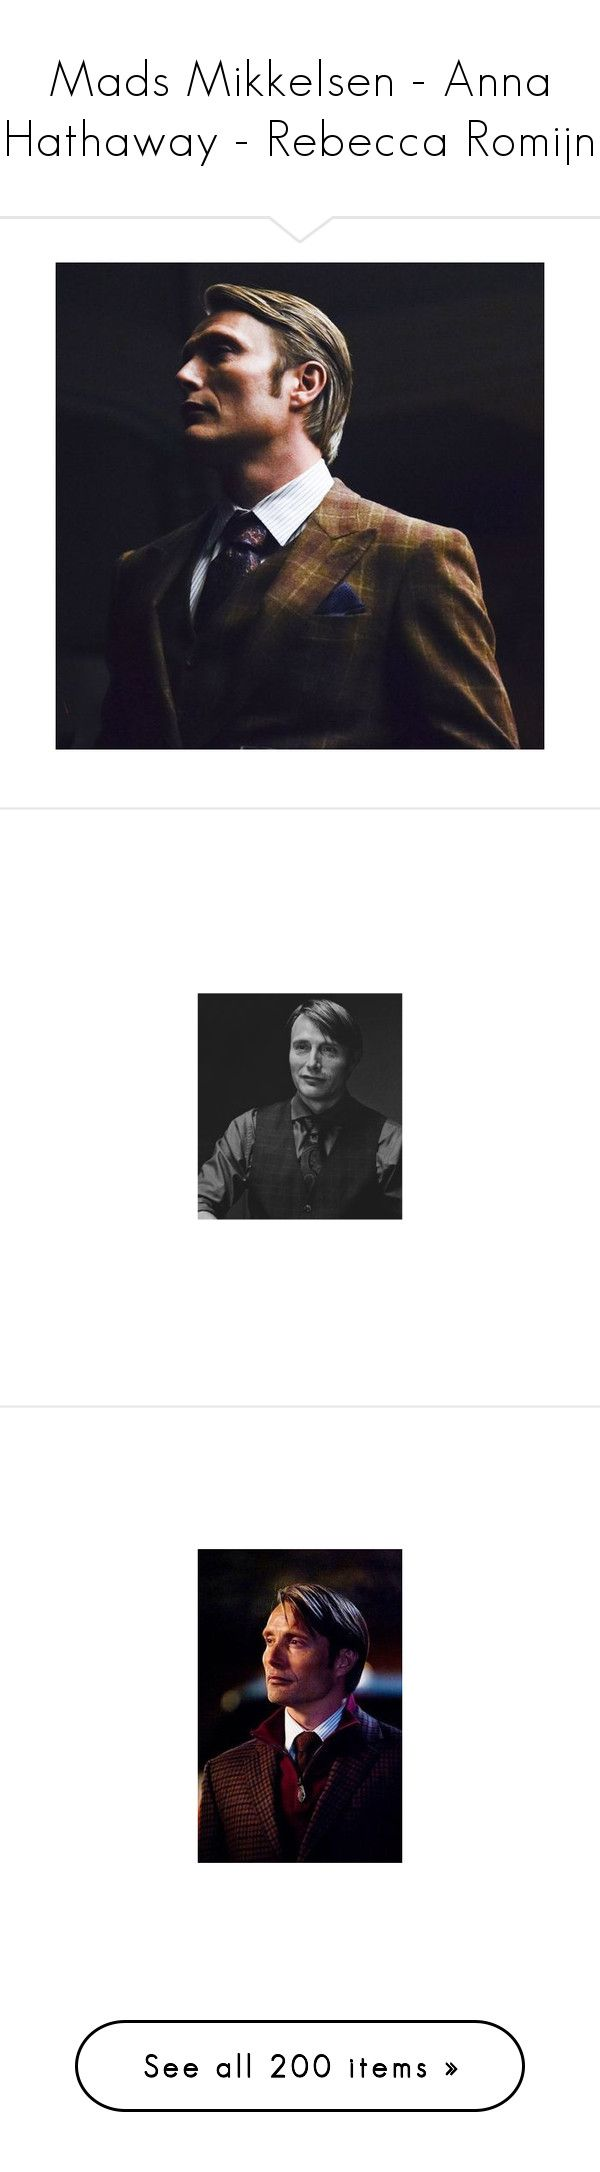 """""""Mads Mikkelsen - Anna Hathaway - Rebecca Romijn"""" by queerlillady ❤ liked on Polyvore featuring men's fashion, costumes, catwoman halloween costume, catwoman costume, cool shit, accessories, eyewear, sunglasses, home and home decor"""